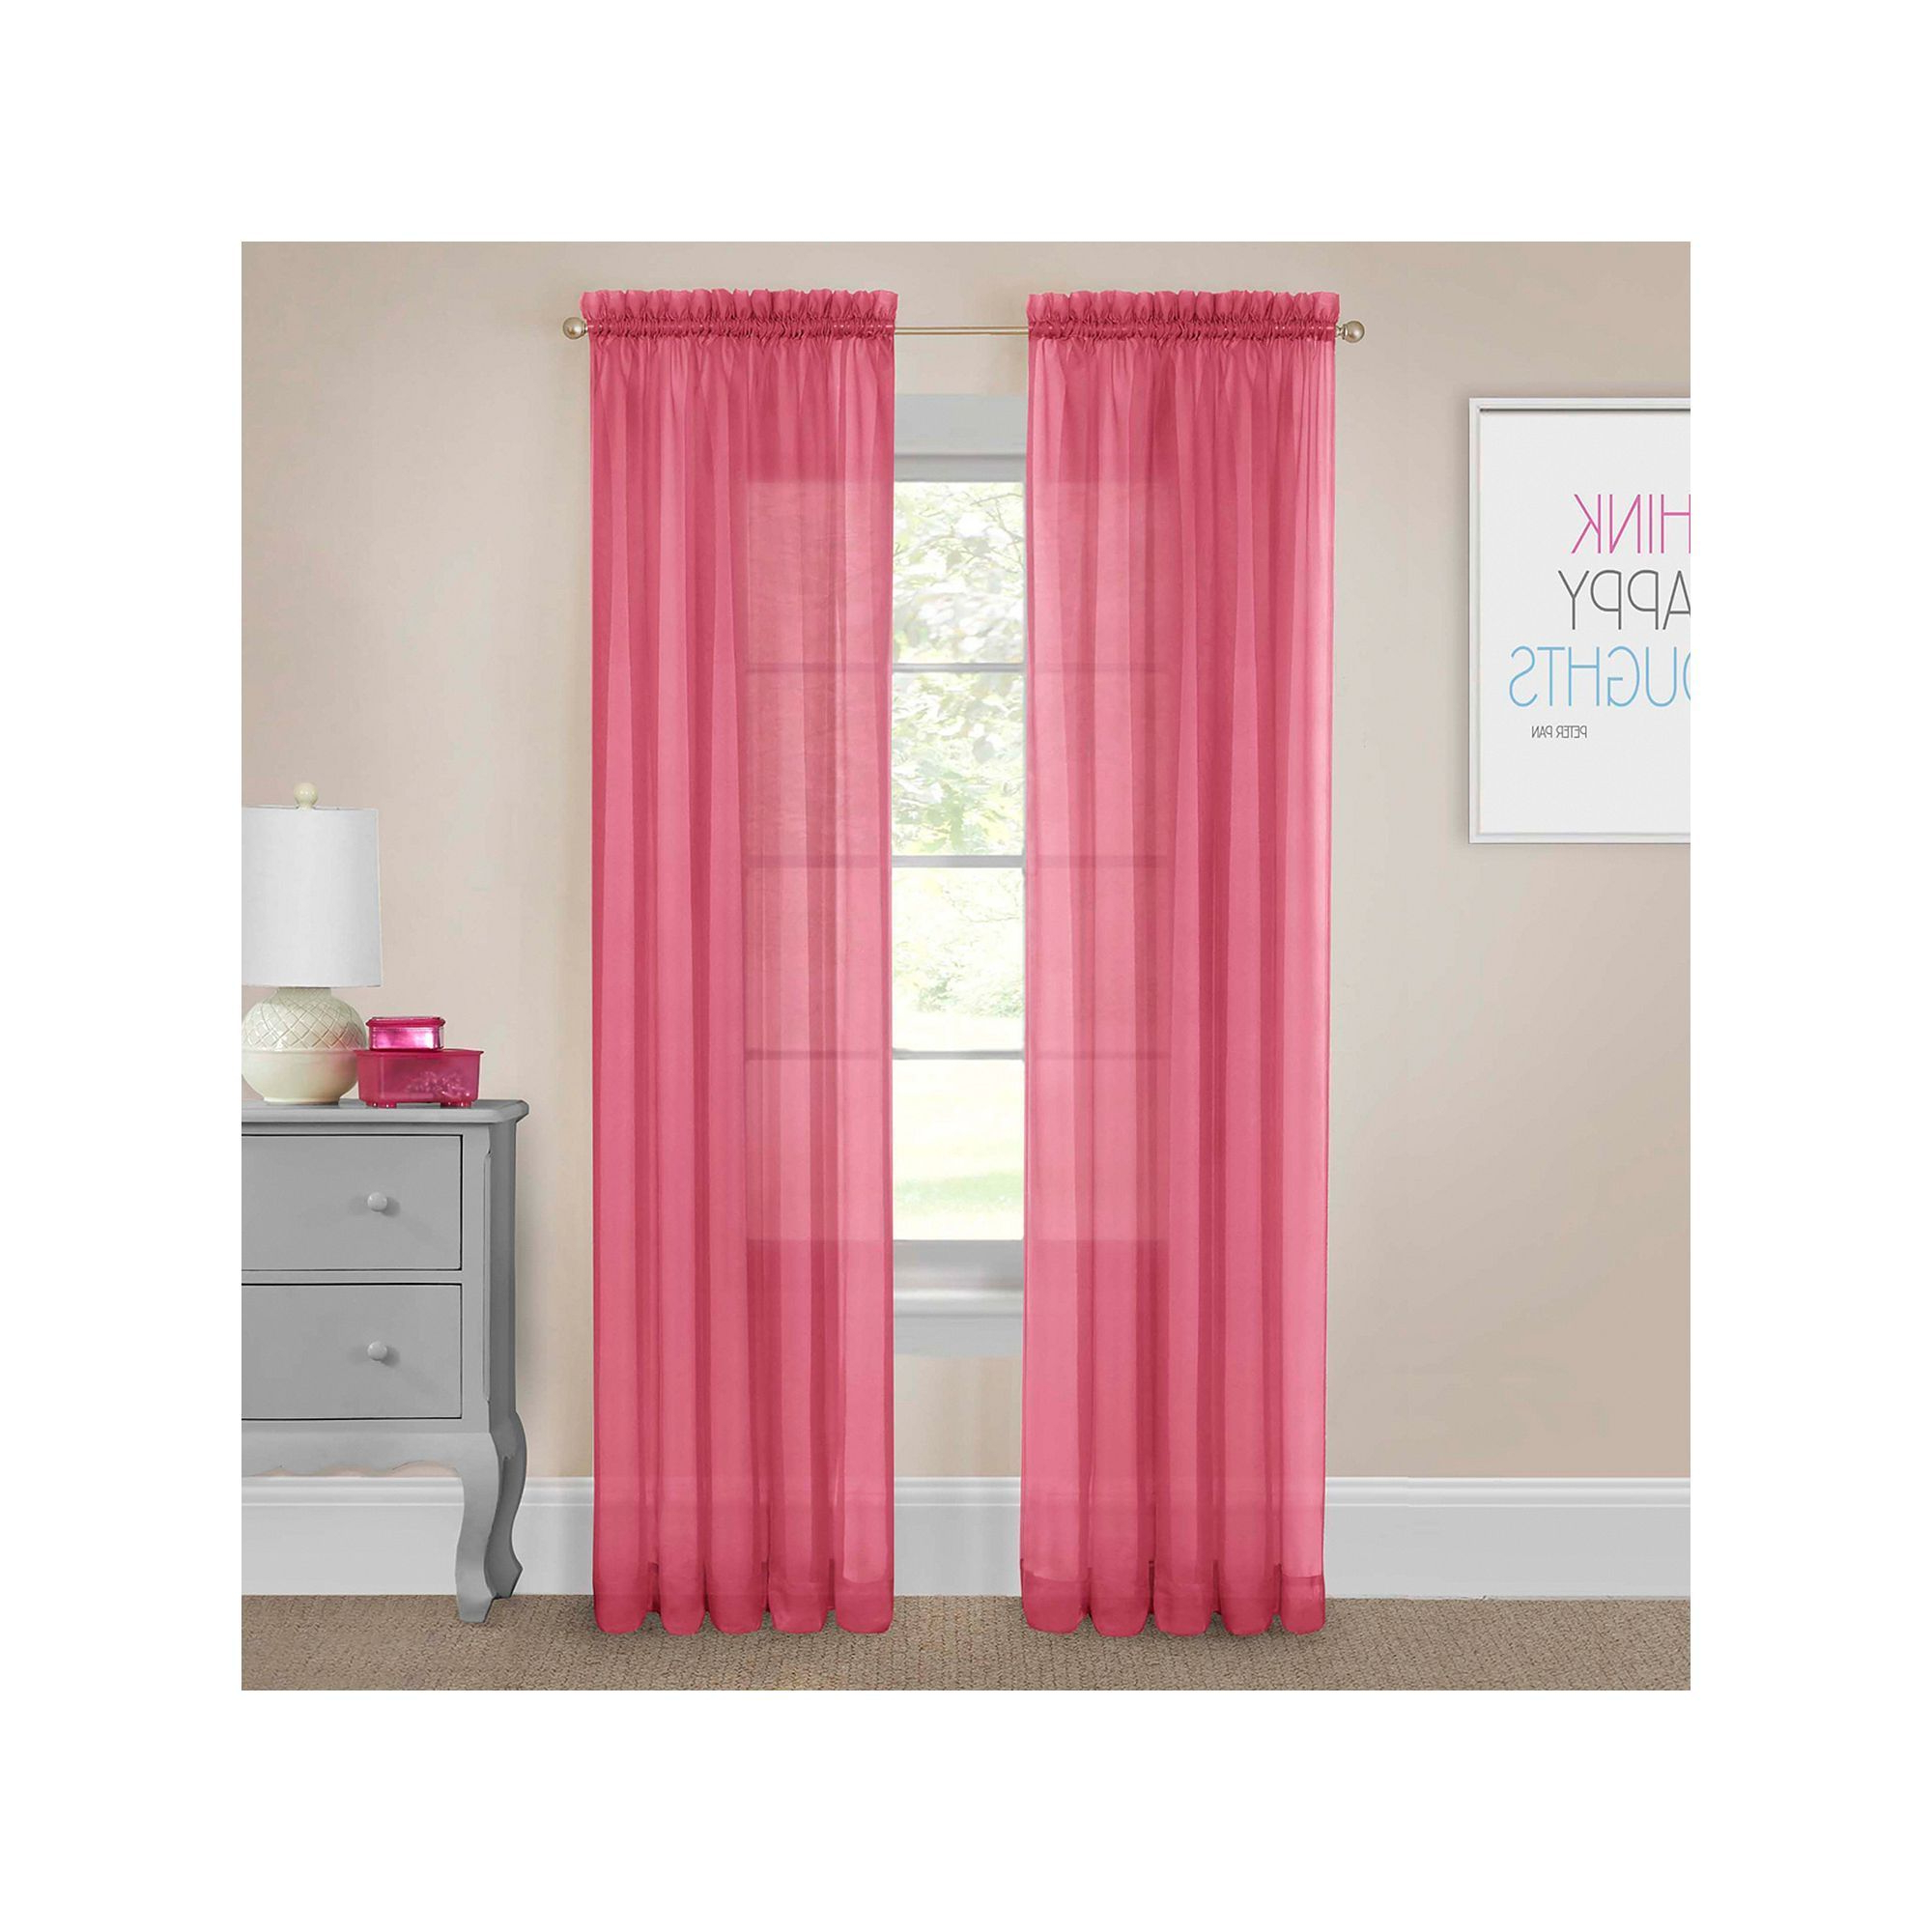 Pairs To Go Victoria Voile Curtain Panel Pairs Within 2020 Pairs To Go 2 Pack Victoria Voile Window Curtains, Pink (View 9 of 20)